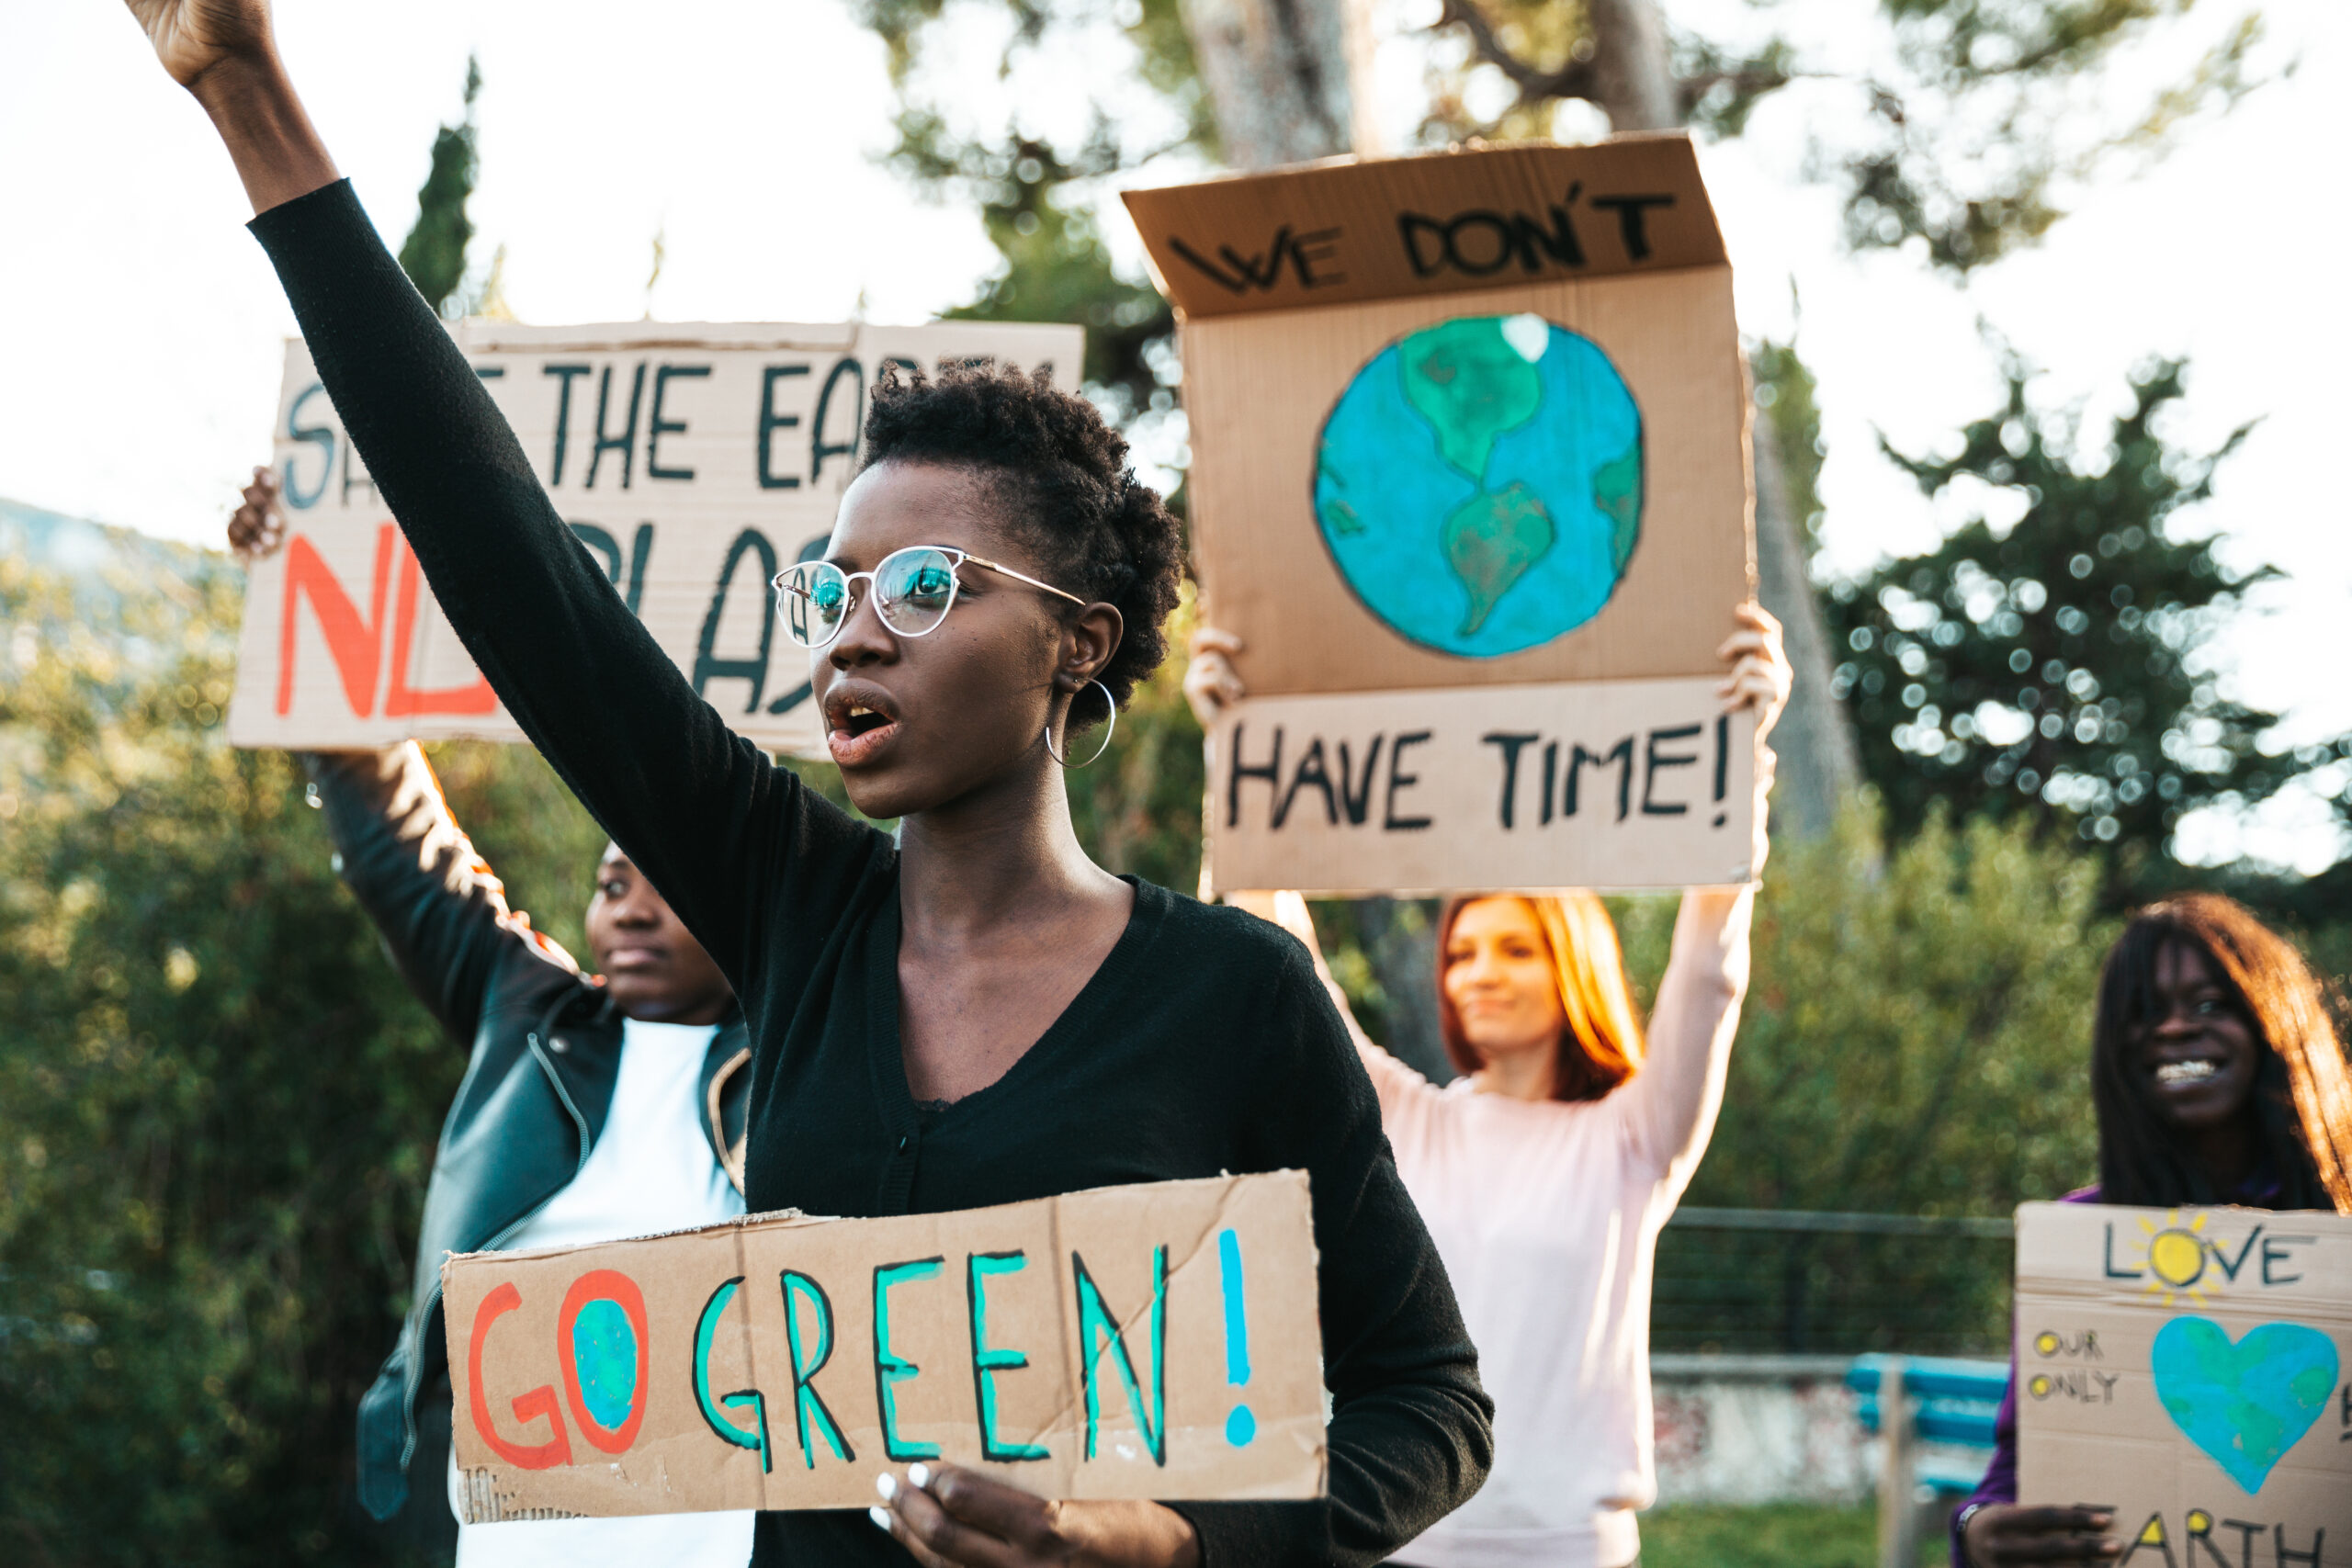 Why Students Want Action on Climate Change